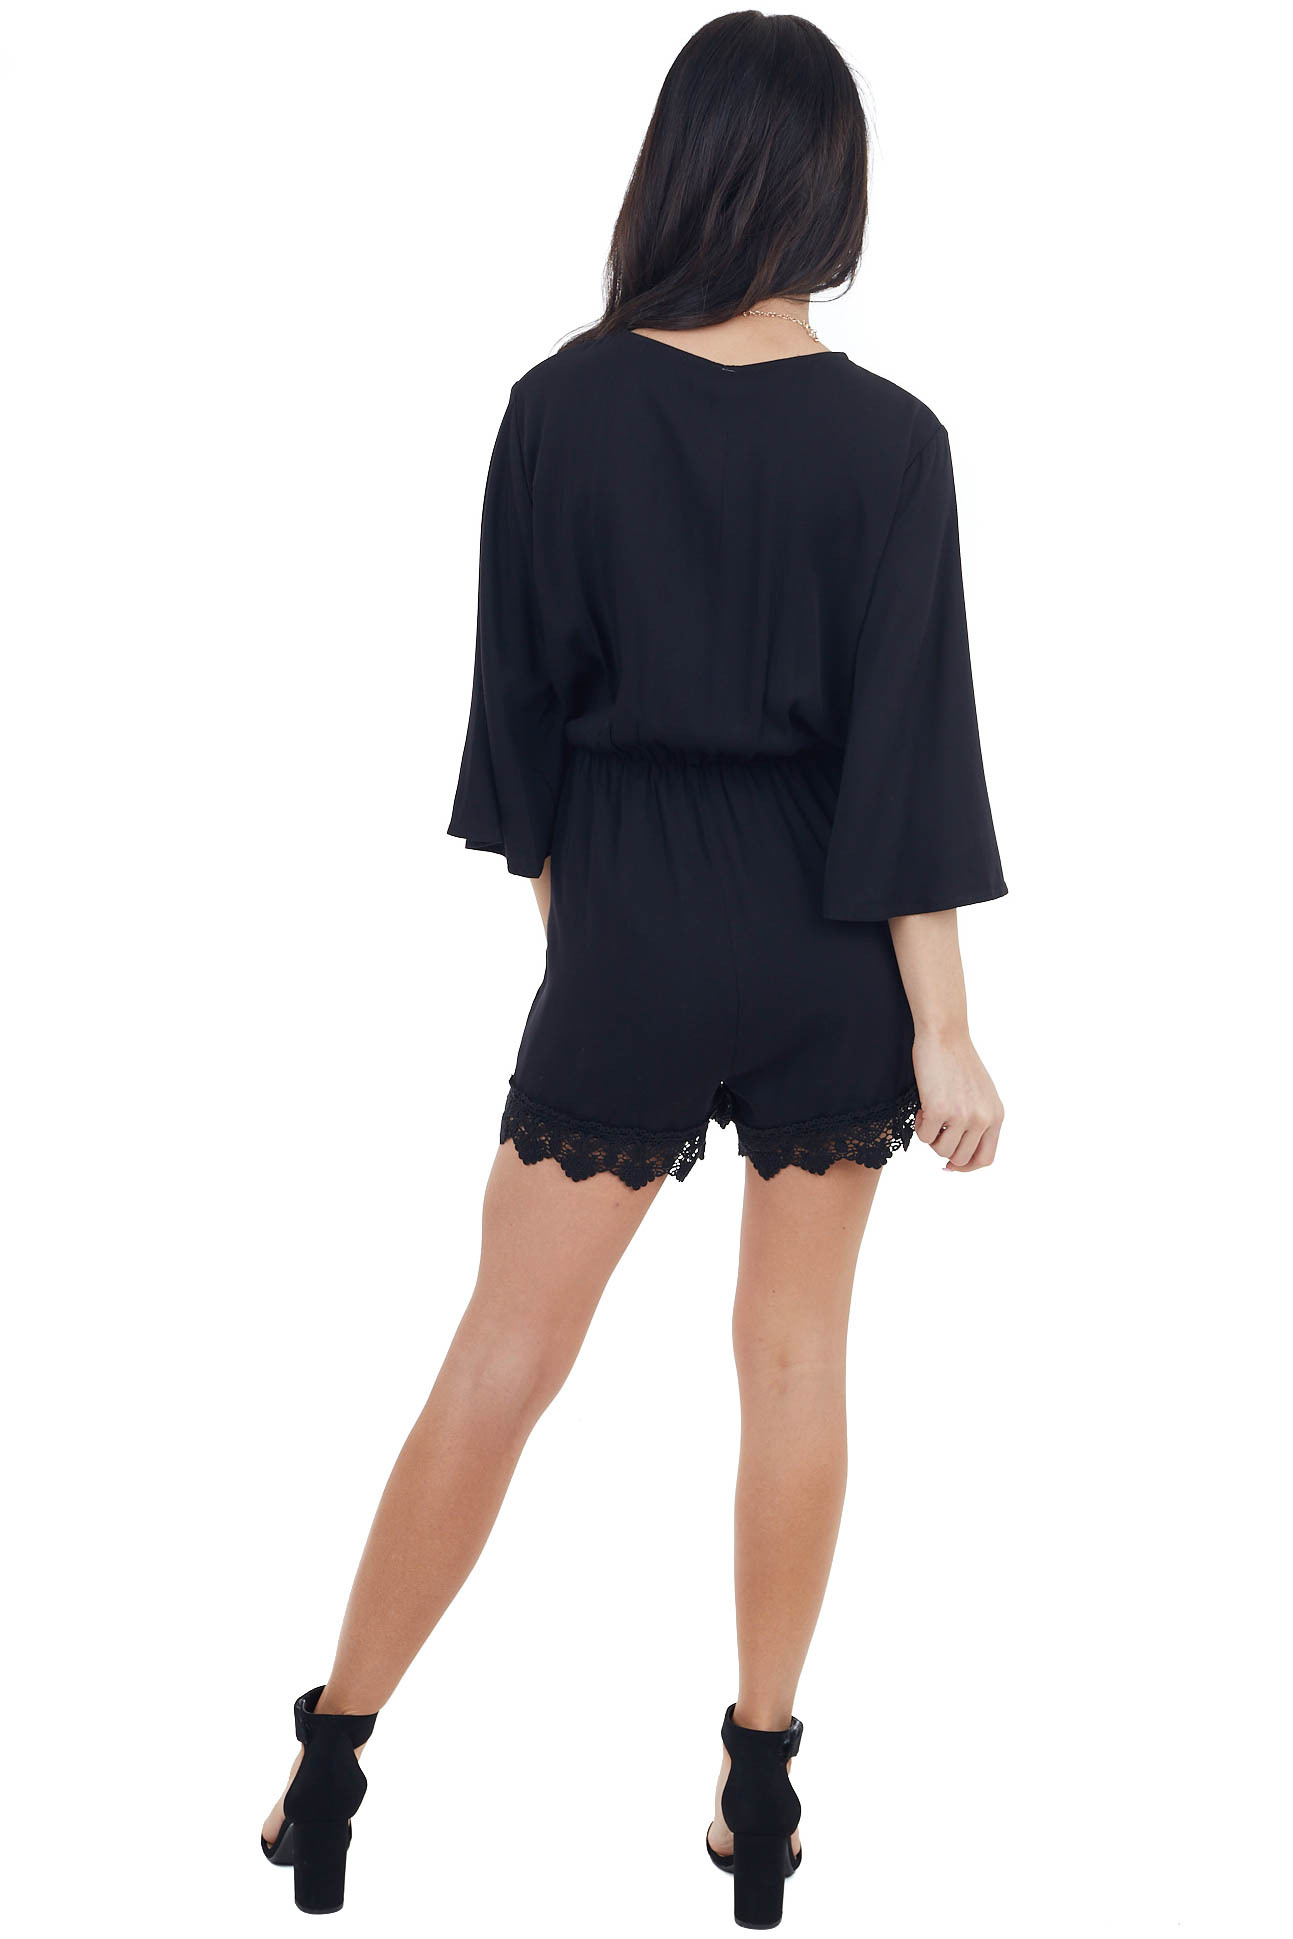 Black Surplice Romper with Pockets and Lace Detail